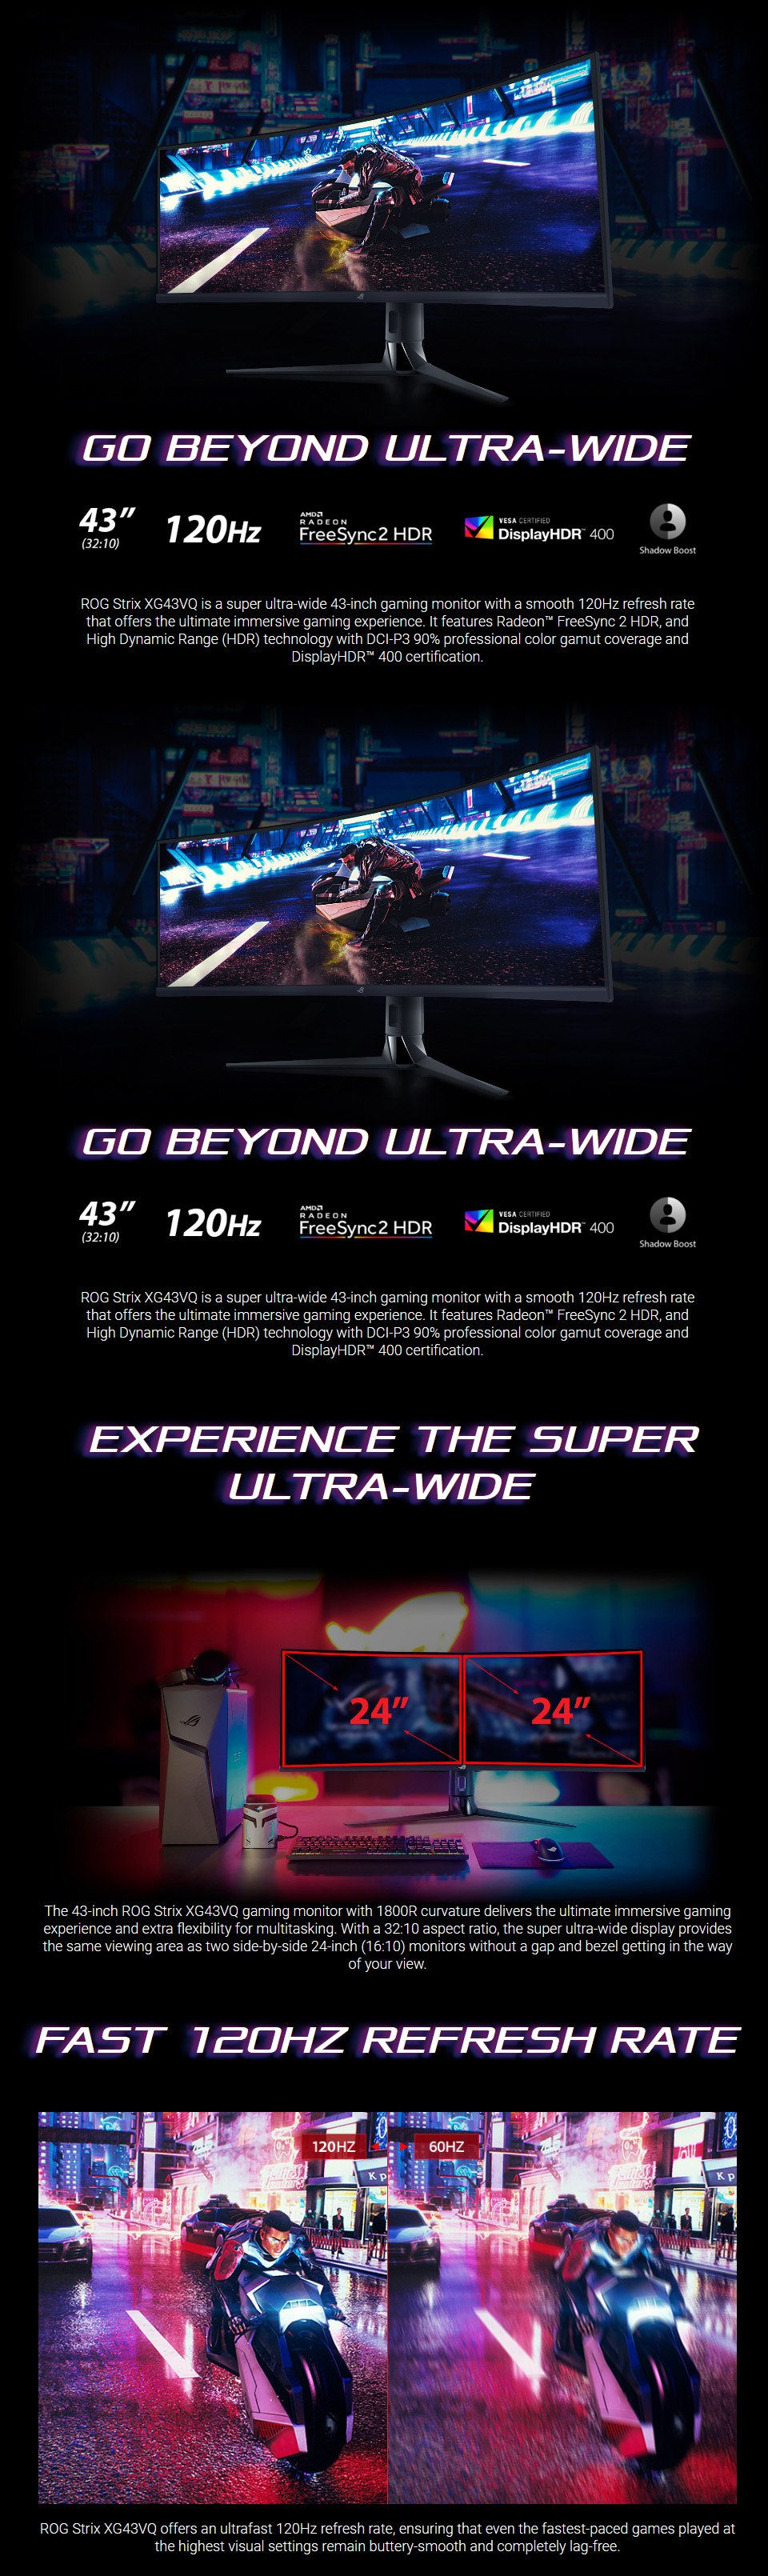 ASUS ROG XG43VQ DFHD+ S-UltraWide 120Hz FreeSync 43in Monitor features